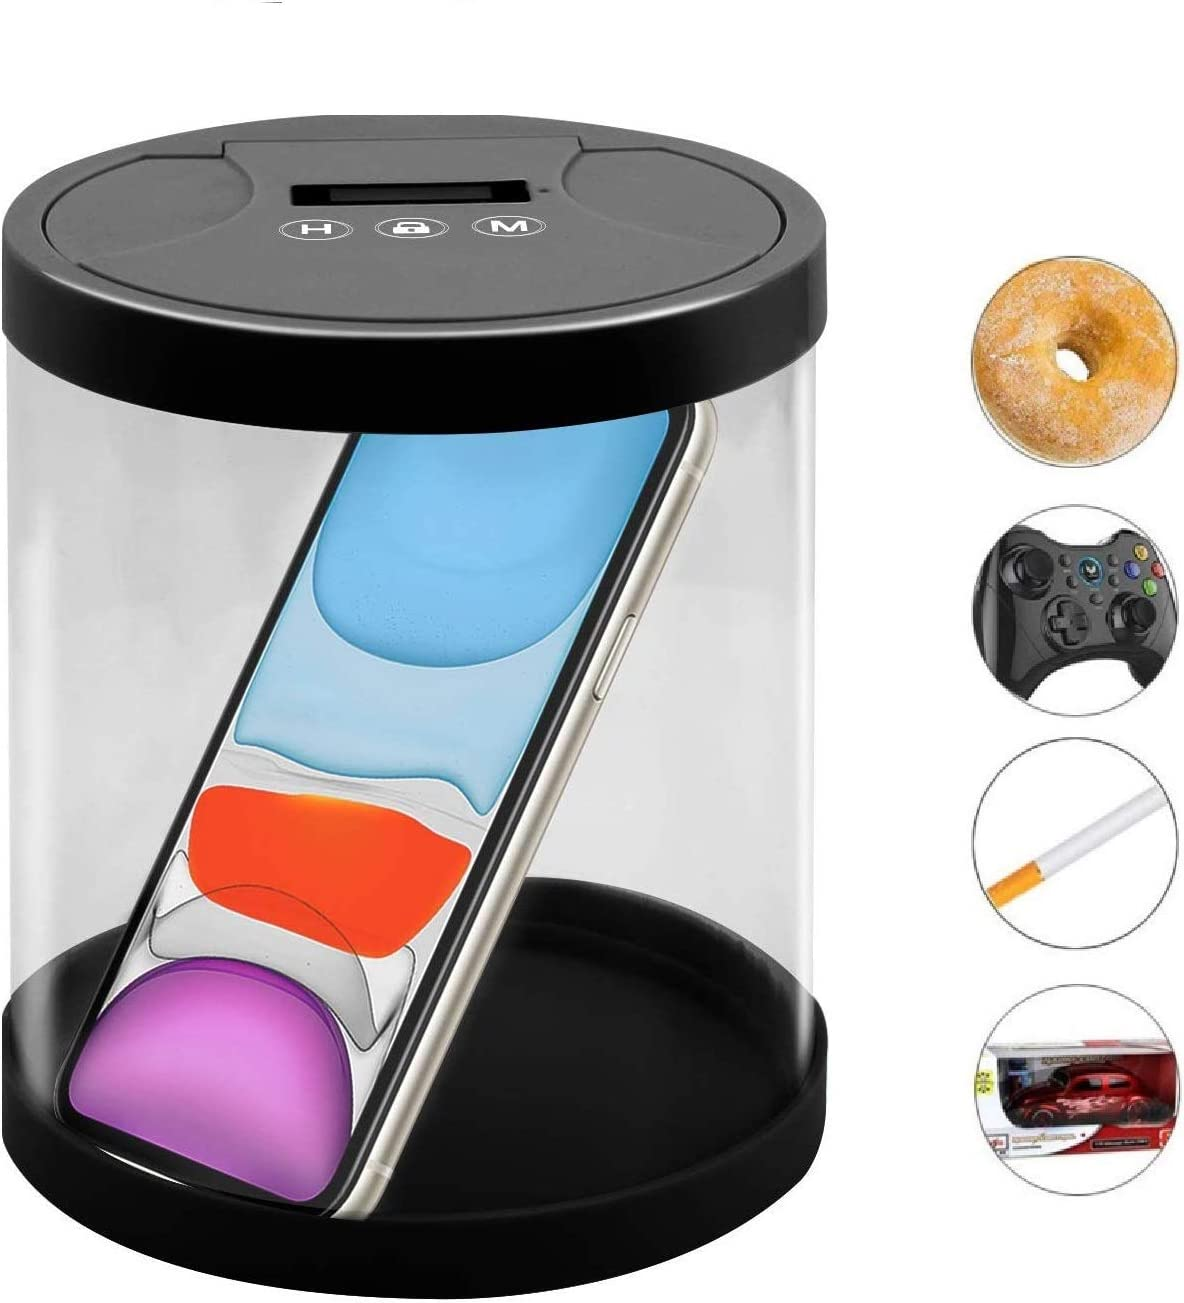 JRing Time Locking Container Pantry Food Storage Box that Collecting Food Medicines Gaming Machine to Prevent Over Sweet Food Smoking and Playing Games (Black)